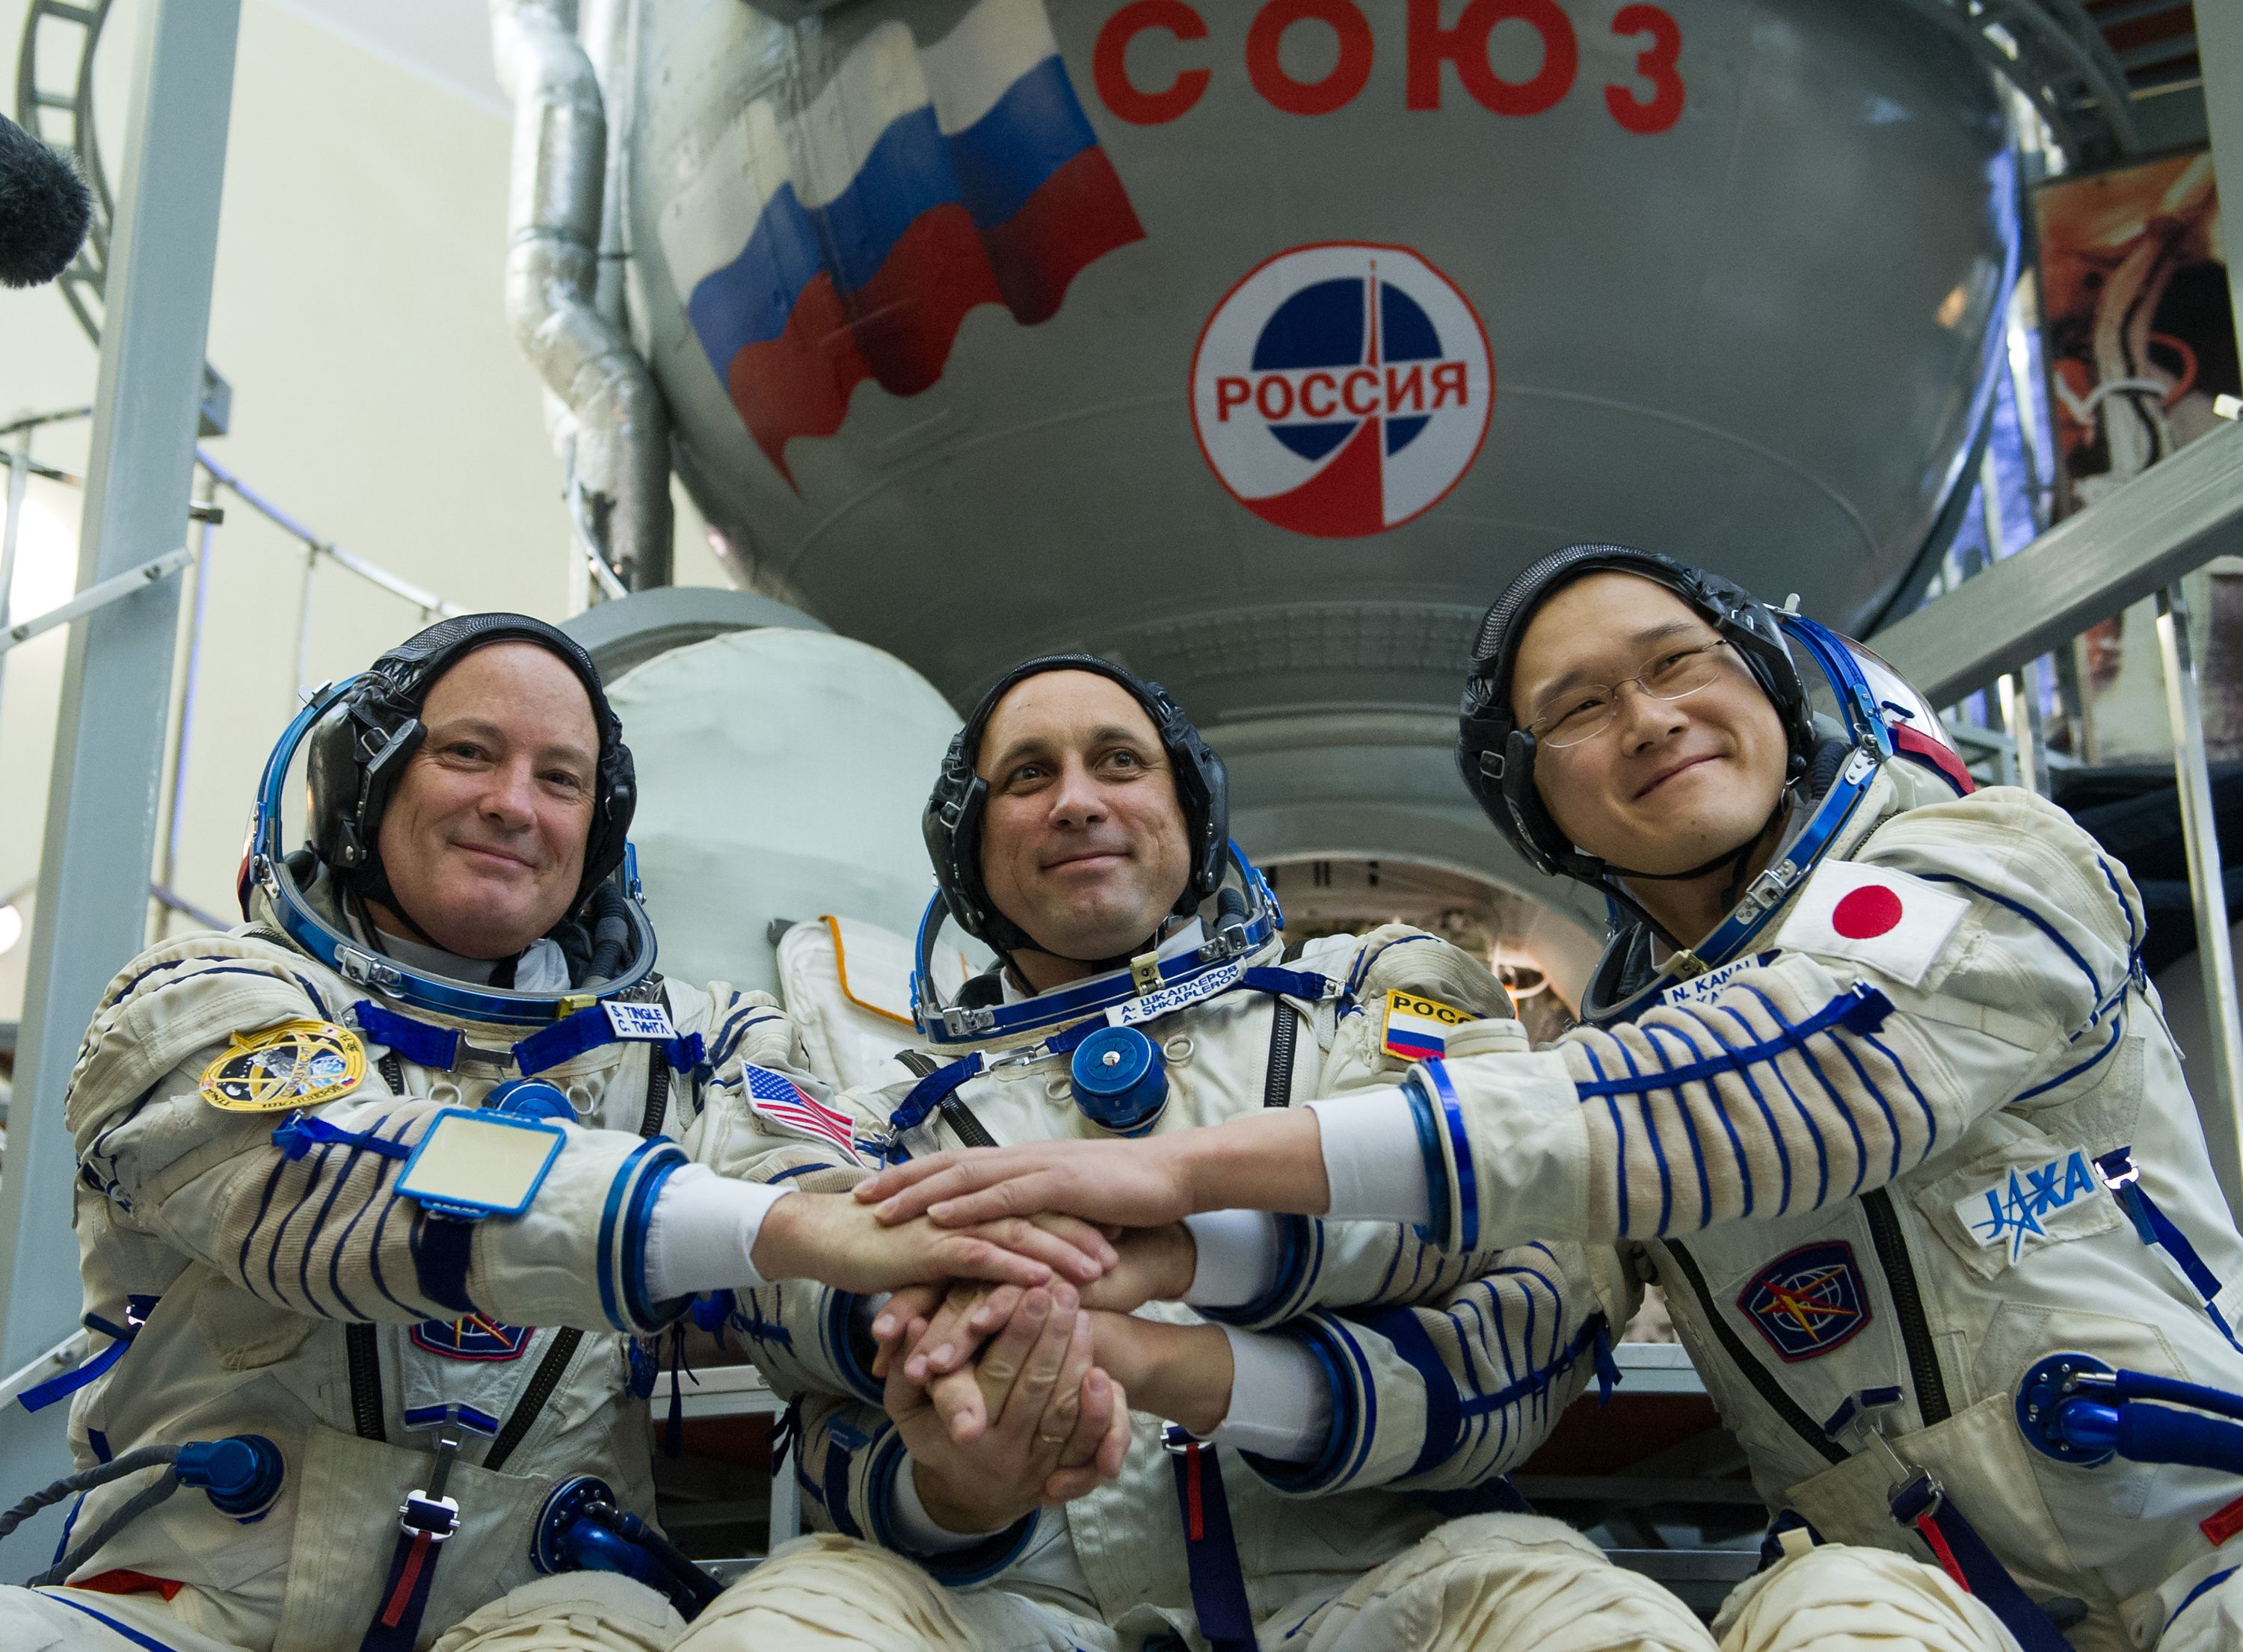 Members of the International Space Station (ISS) expedition 54/55, NASA astronaut Scott Tingle (L), Roscosmos cosmonaut Anton Shkaplerov (C) and Norishige Kanai of the Japan Aerospace Exploration Agency (JAXA) shake hands before their final exam at the Gagarin Cosmonauts' Training Centre in Star City outside Moscow on November 29, 2017. (STR/AFP/Getty Images)